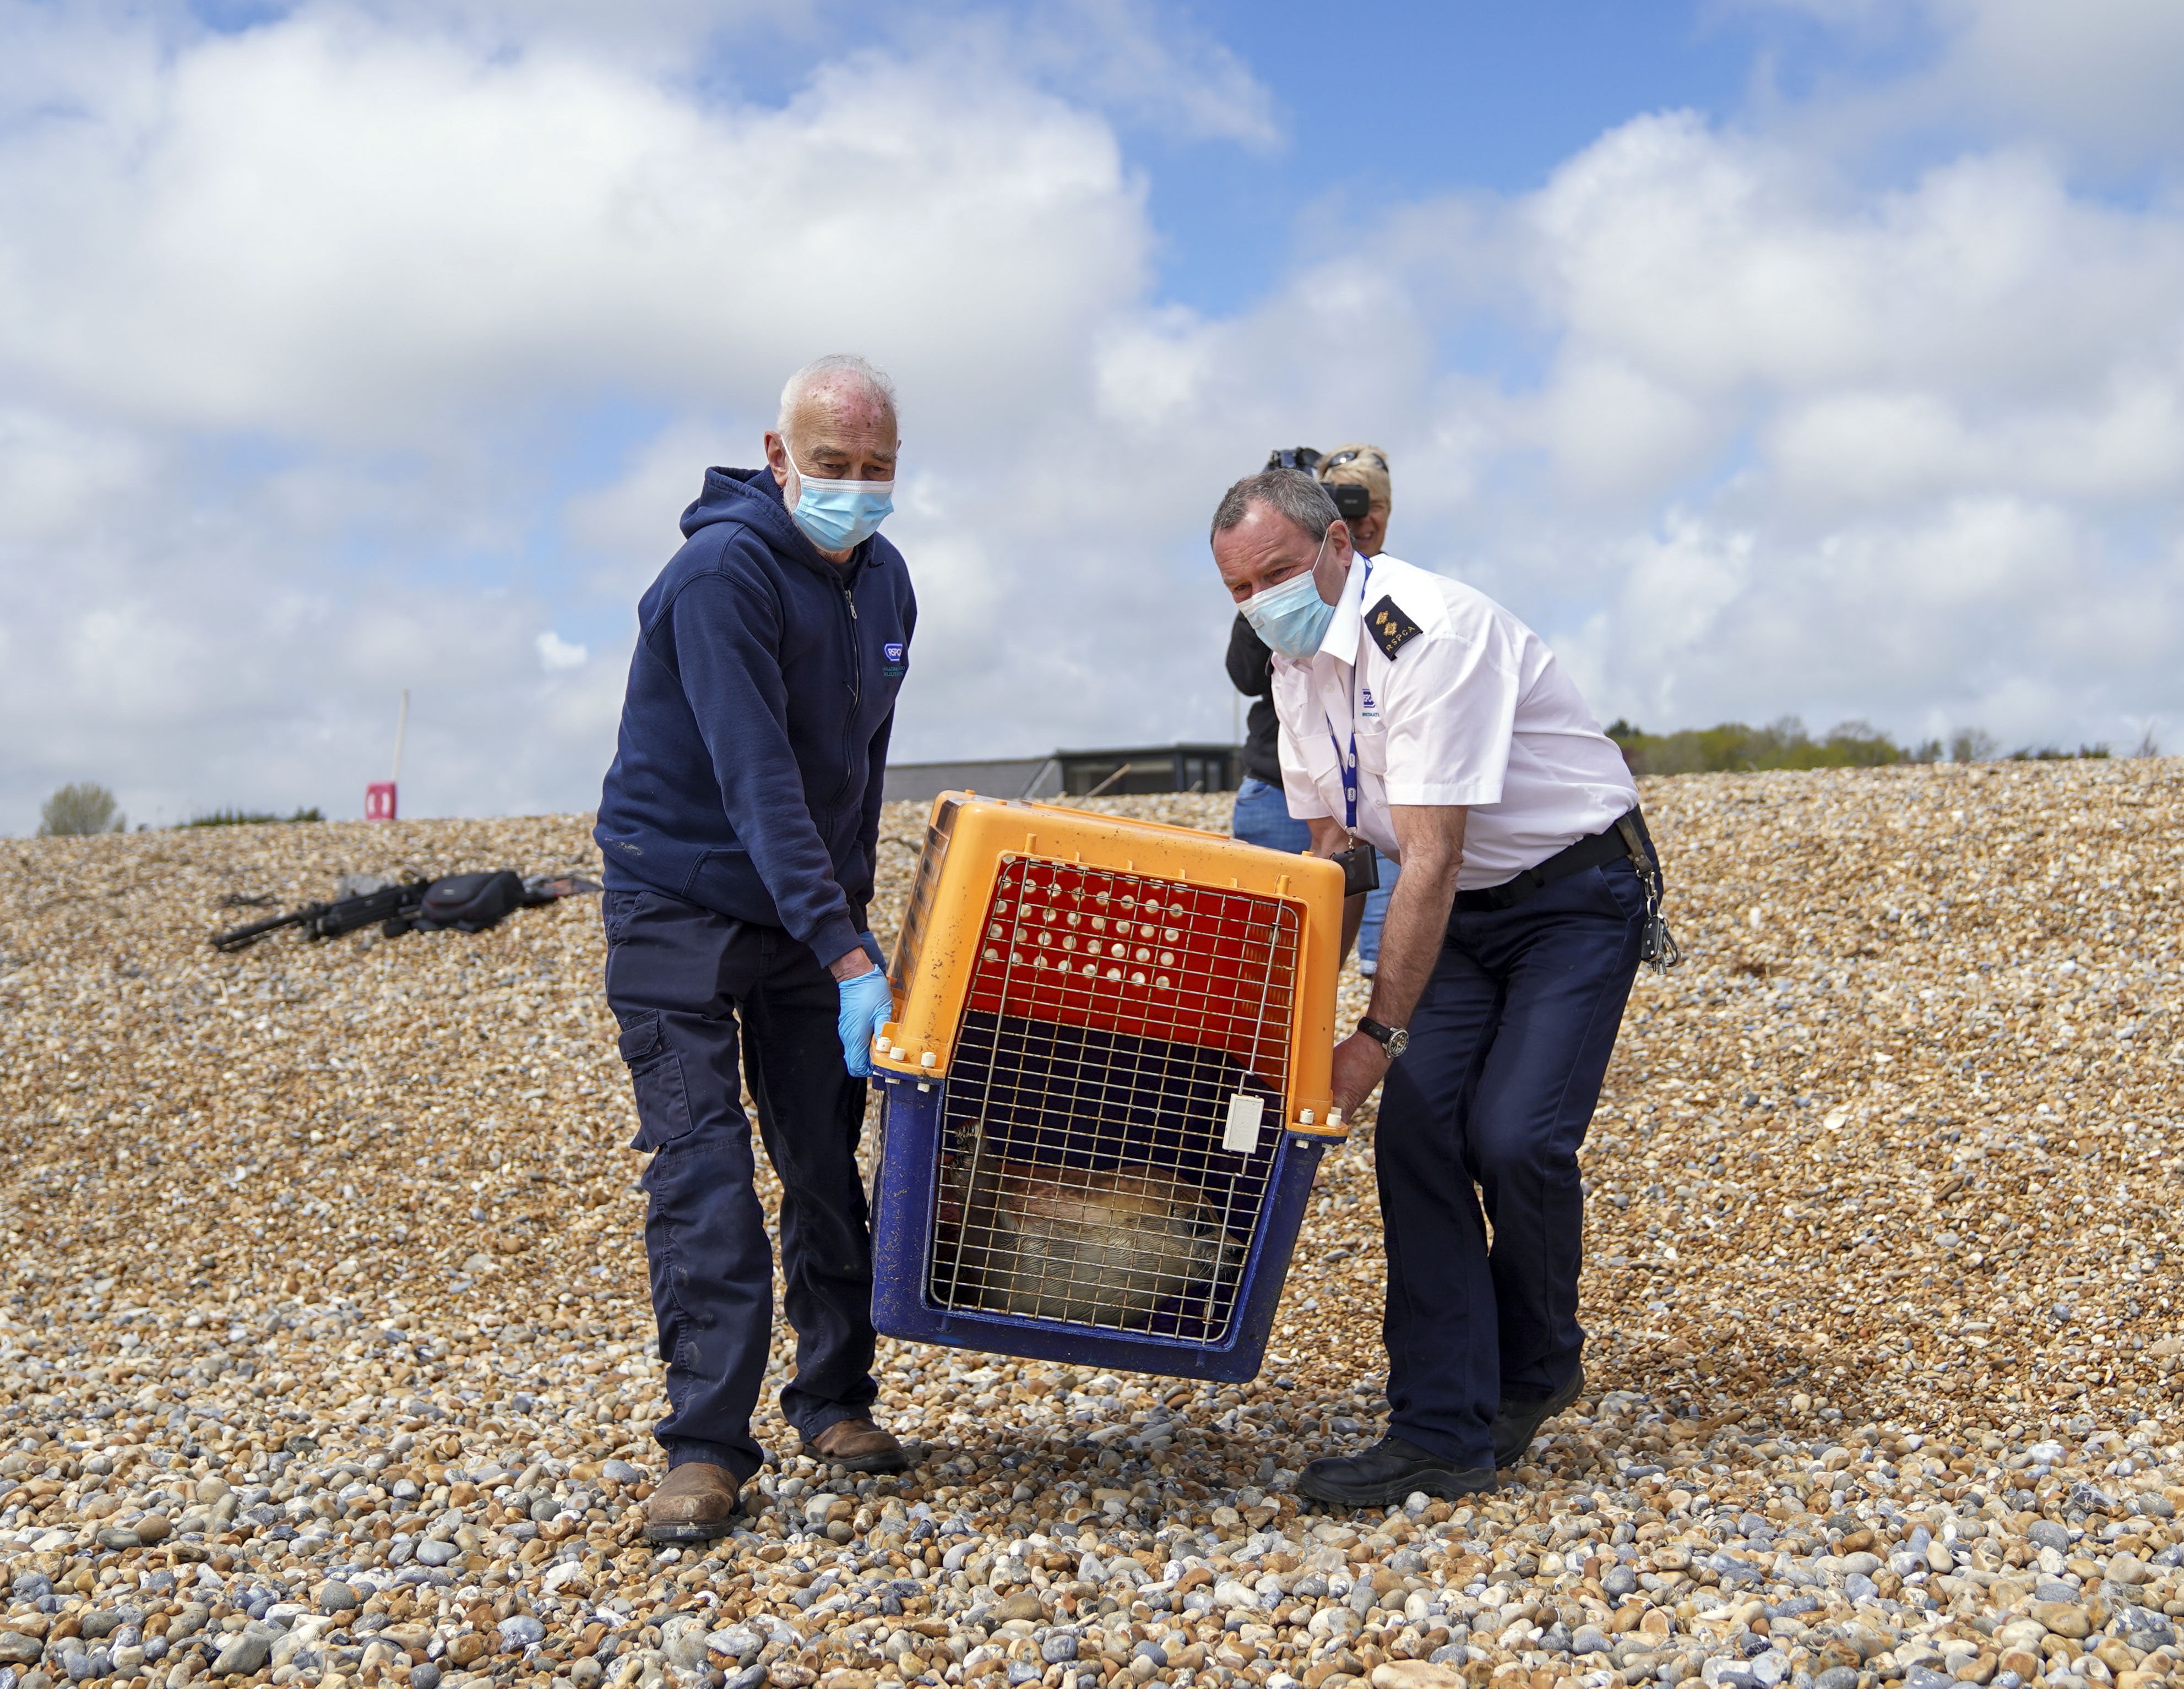 <p>Hubble, a sick Common Seal rescued from Camber Sands in April and who was treated for lungworm and rehabilitated at RSPCA Mallydams Wood Wildlife Centre, is released back into the sea at Pett Level beach near Hastings, East Sussex. Picture date: Wednesday May 12, 2021.</p>